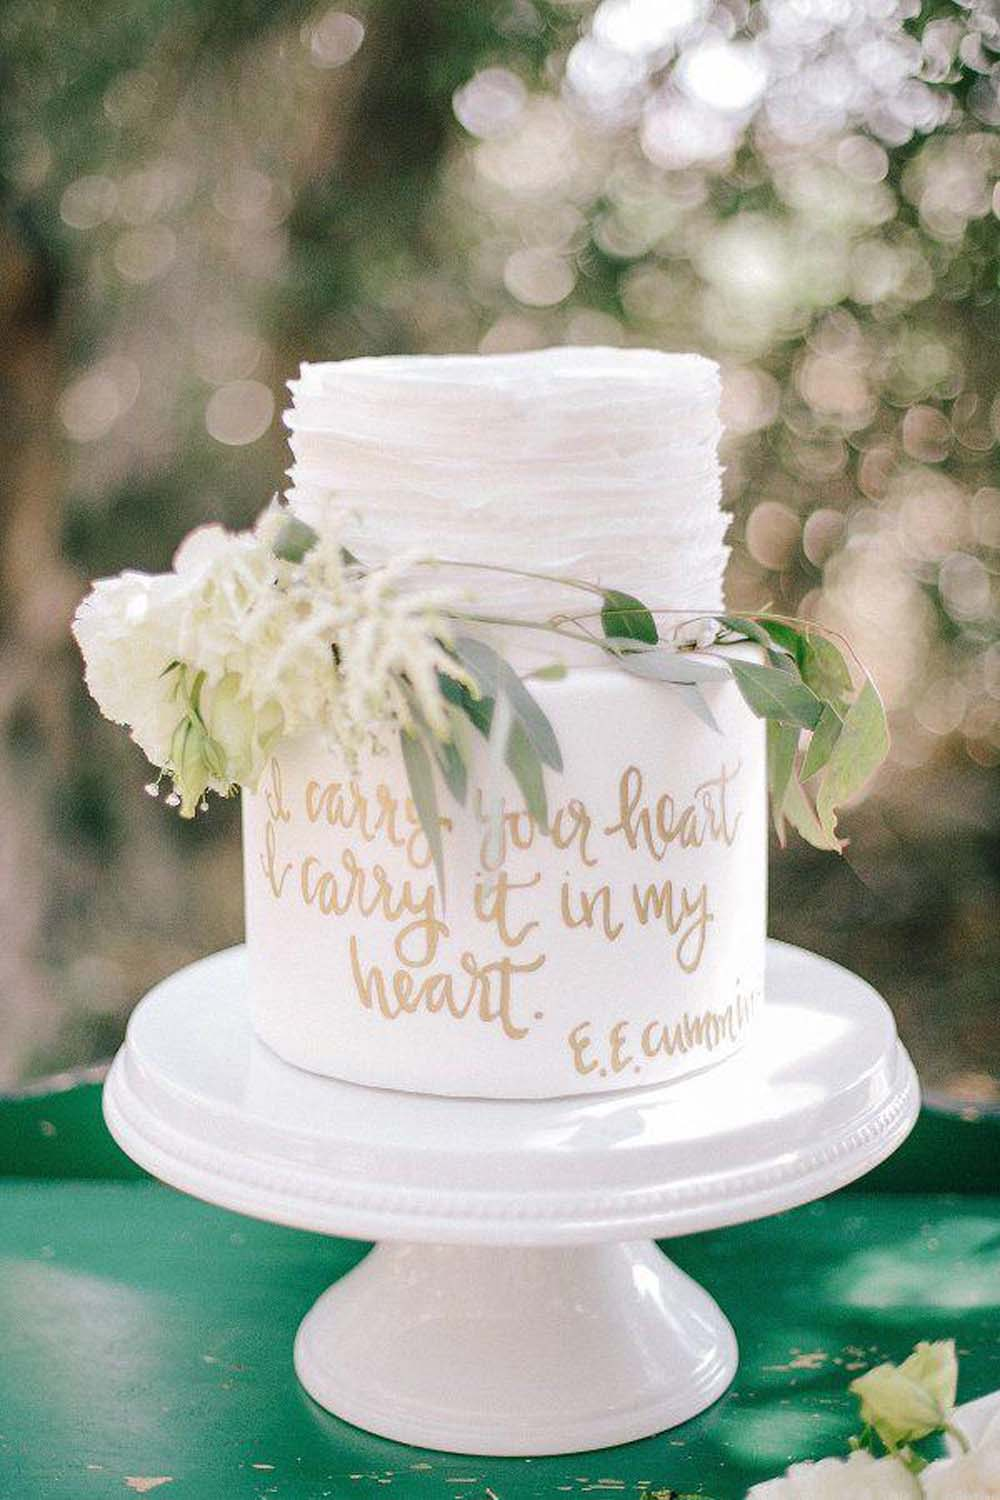 The Top 10 Best Blogs on White Wedding Cakes